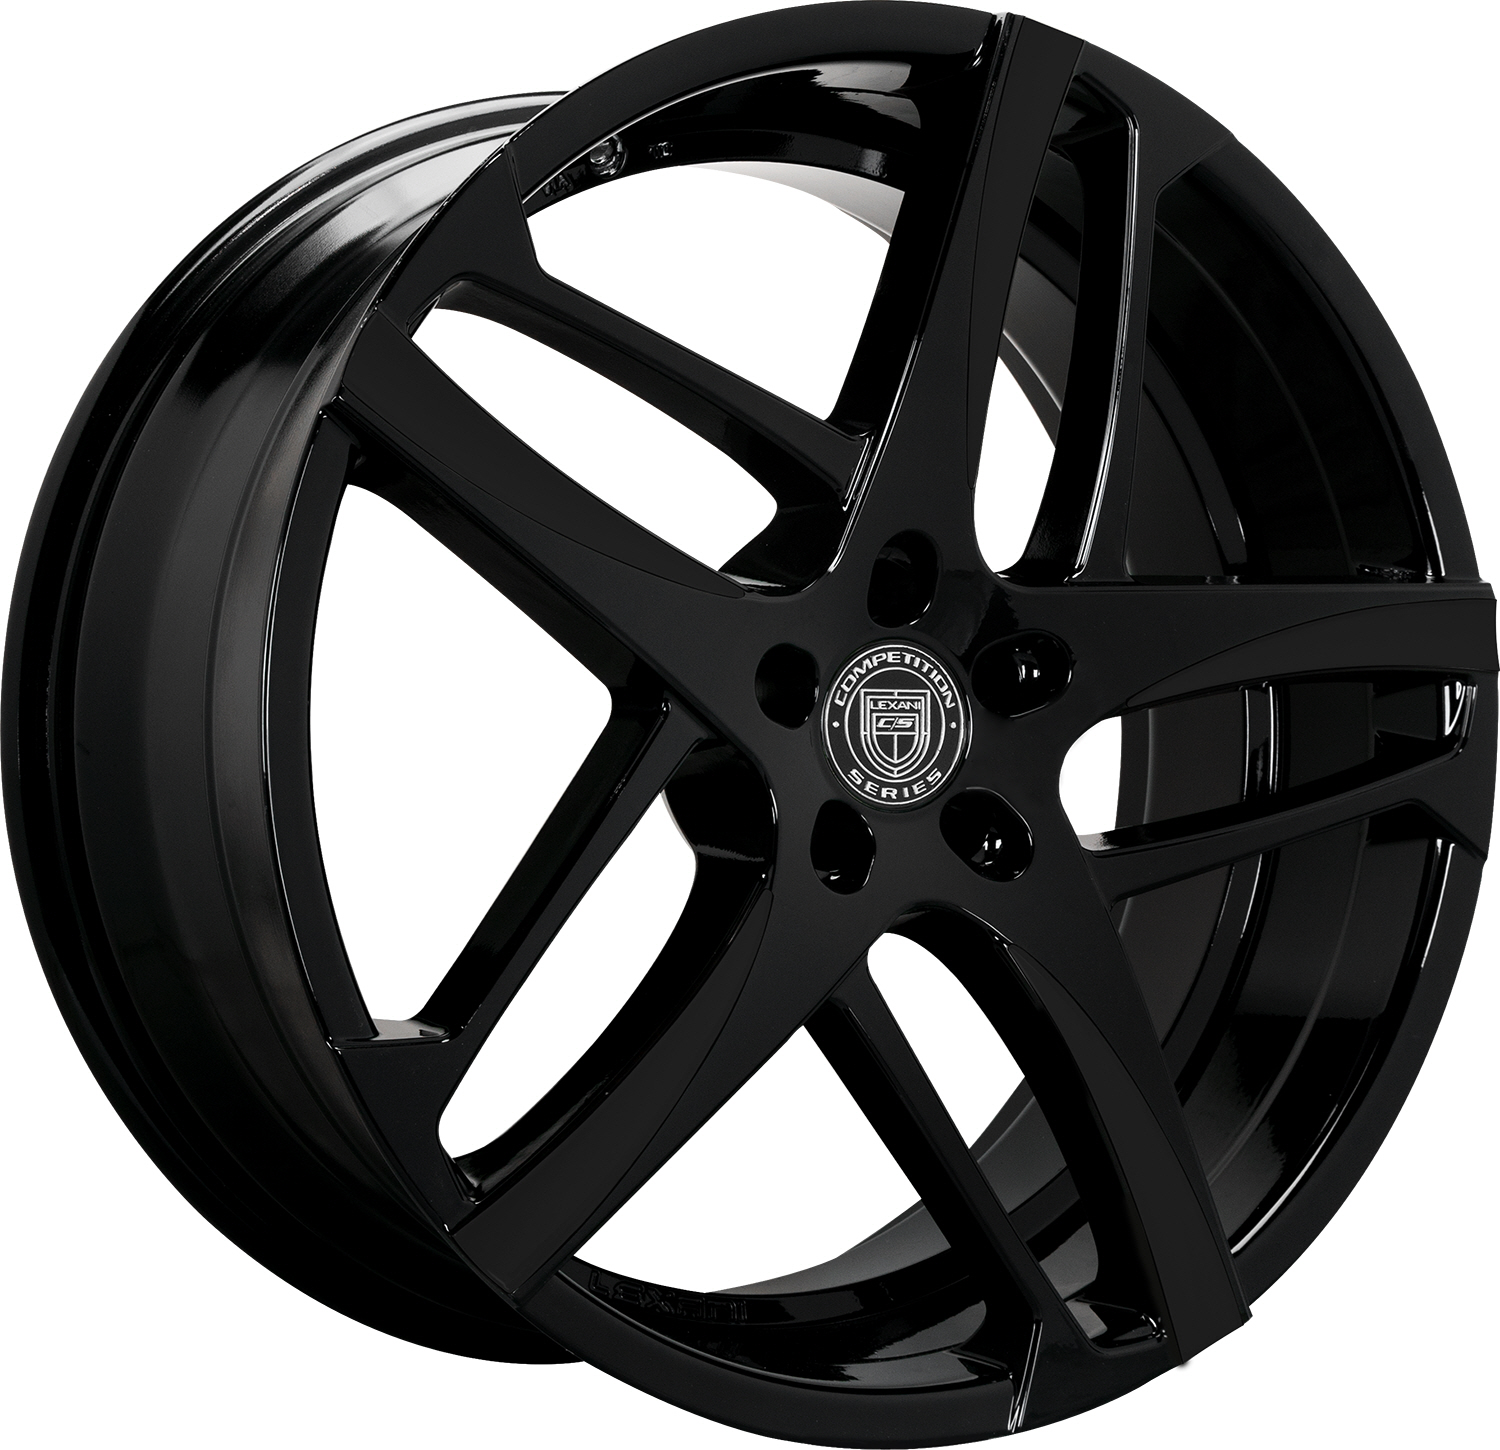 668 - BAVARIA  WHEELS AND RIMS PACKAGES